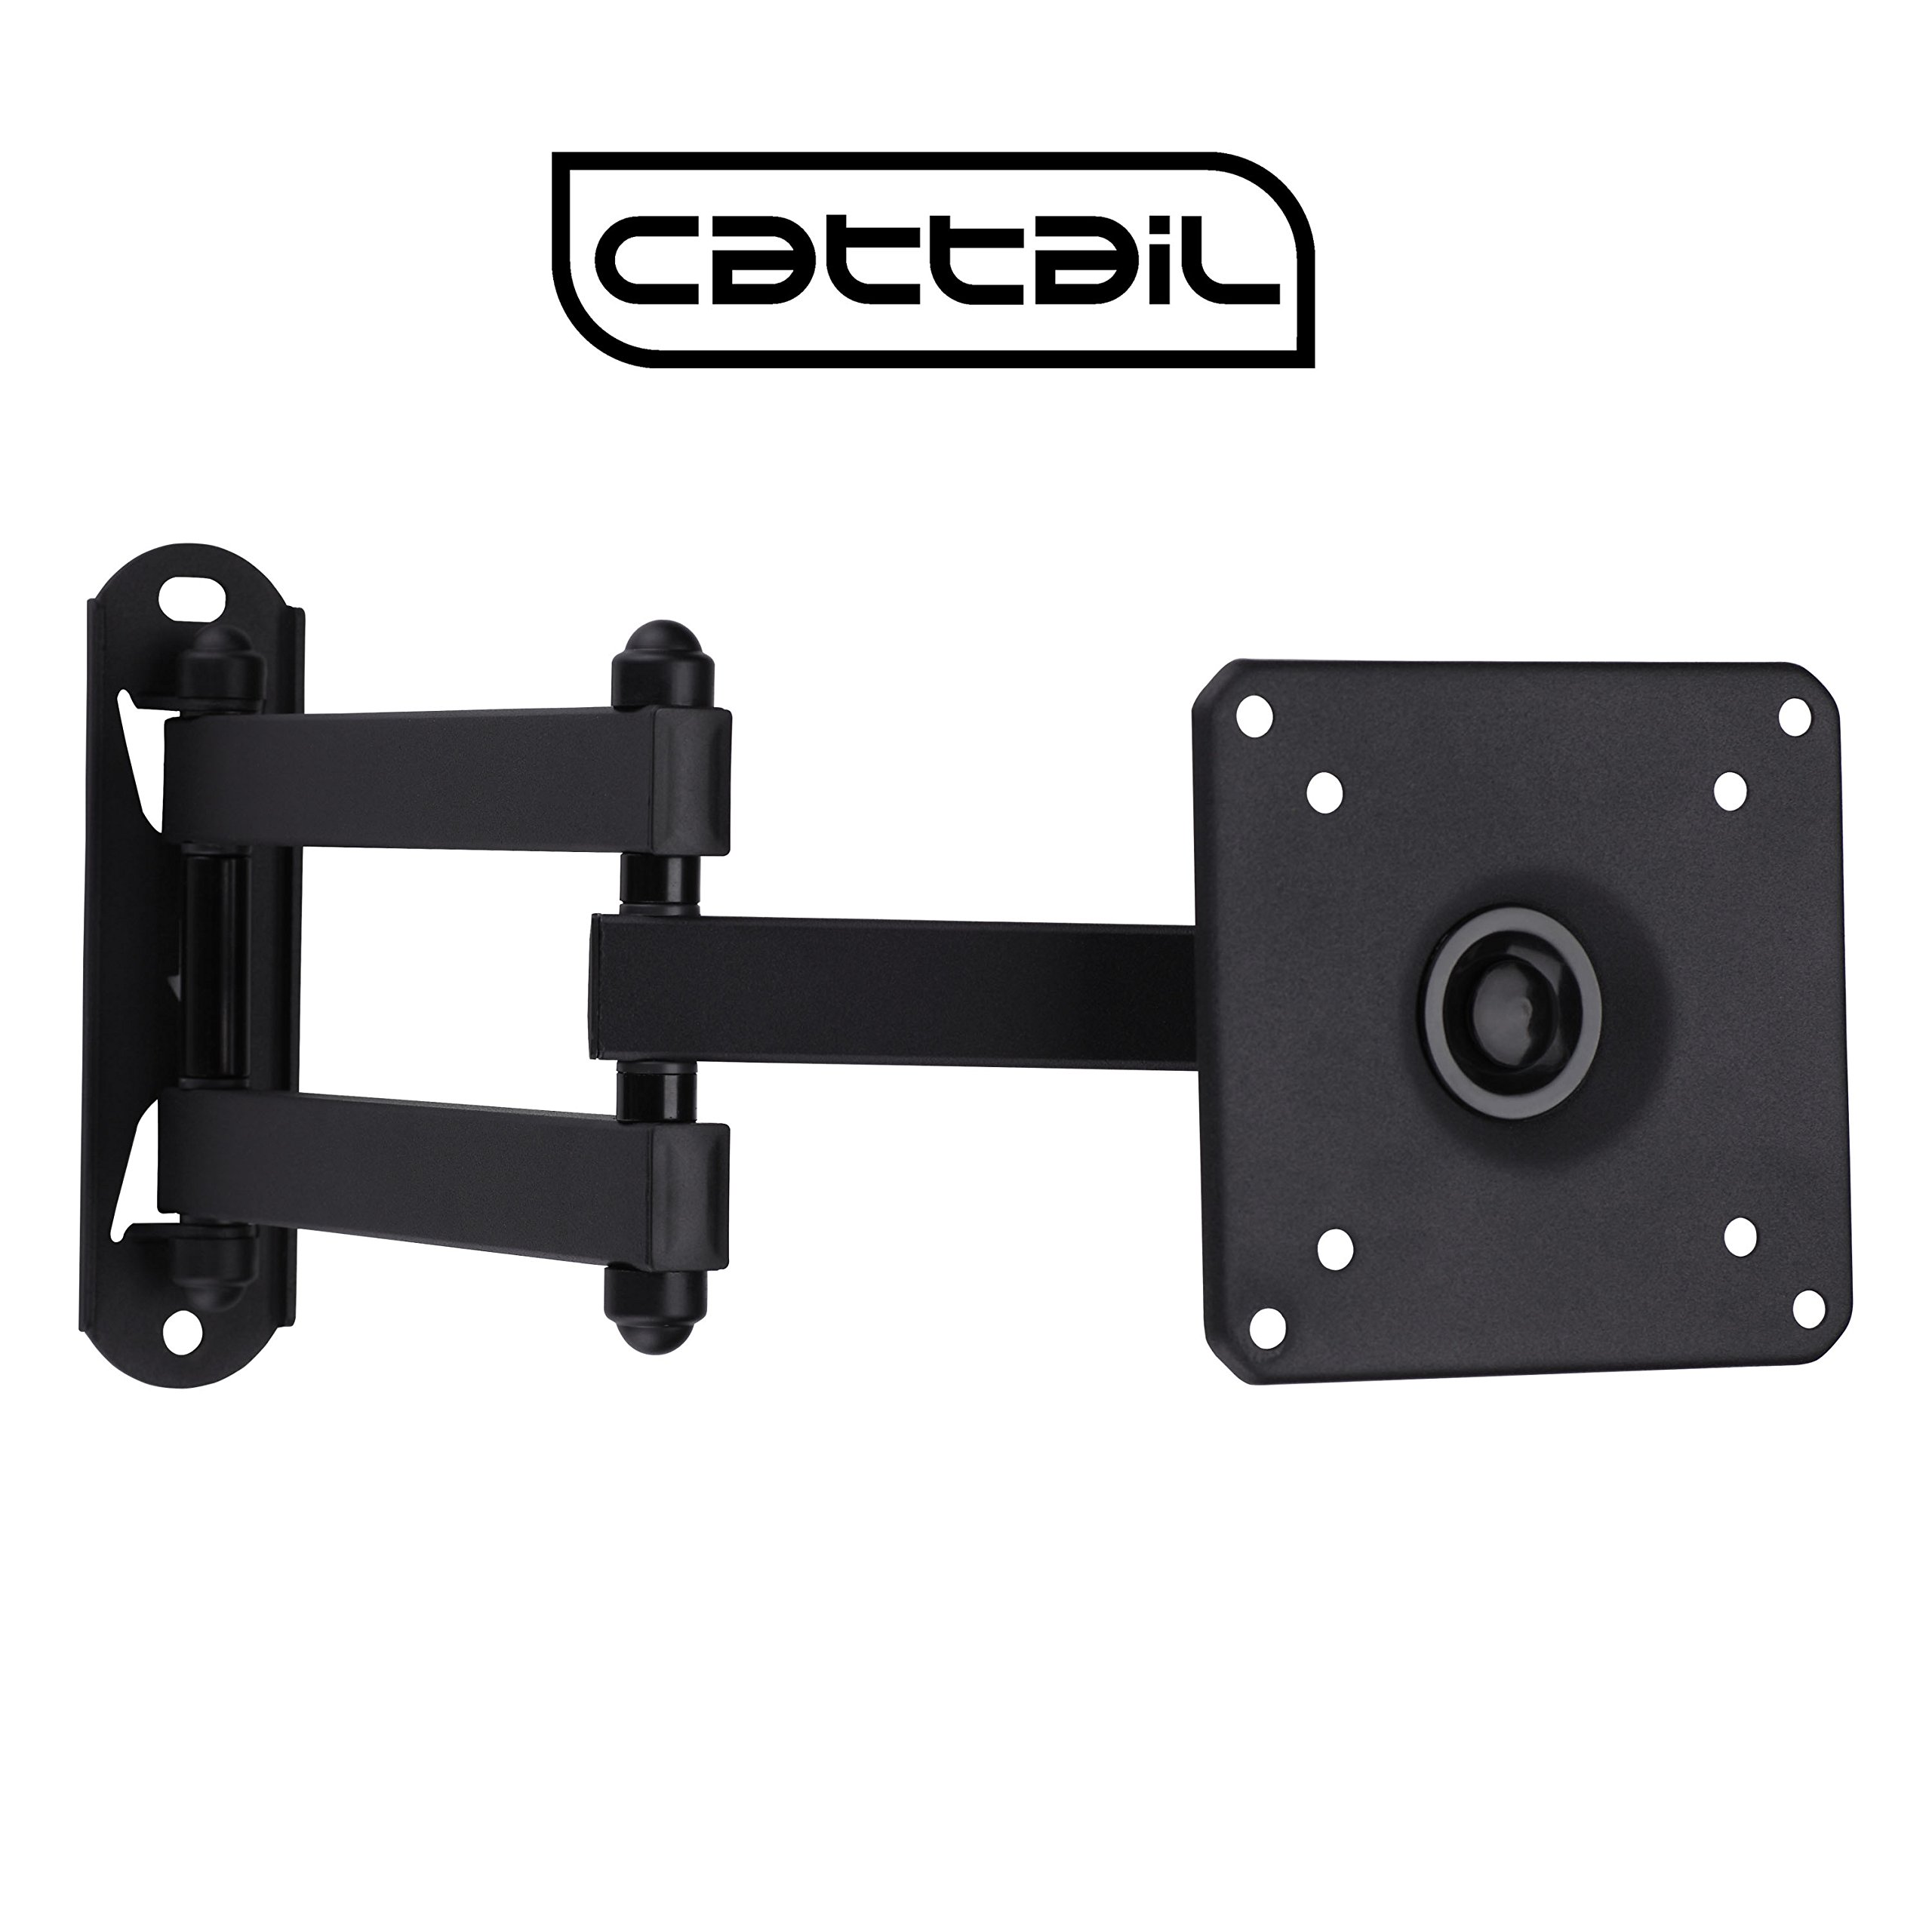 "Cattail TV LCD Monitor Wall Mount Bracket With Full Motion Swing Out Tilt for Most 13"" 15"" 17"" 19"" 22"" 23"" 24"" 25"" 26"" 27"" LED LCD OLED Plasma Flat Screen Monitor up To 44 lbs VESA 100x100mm"